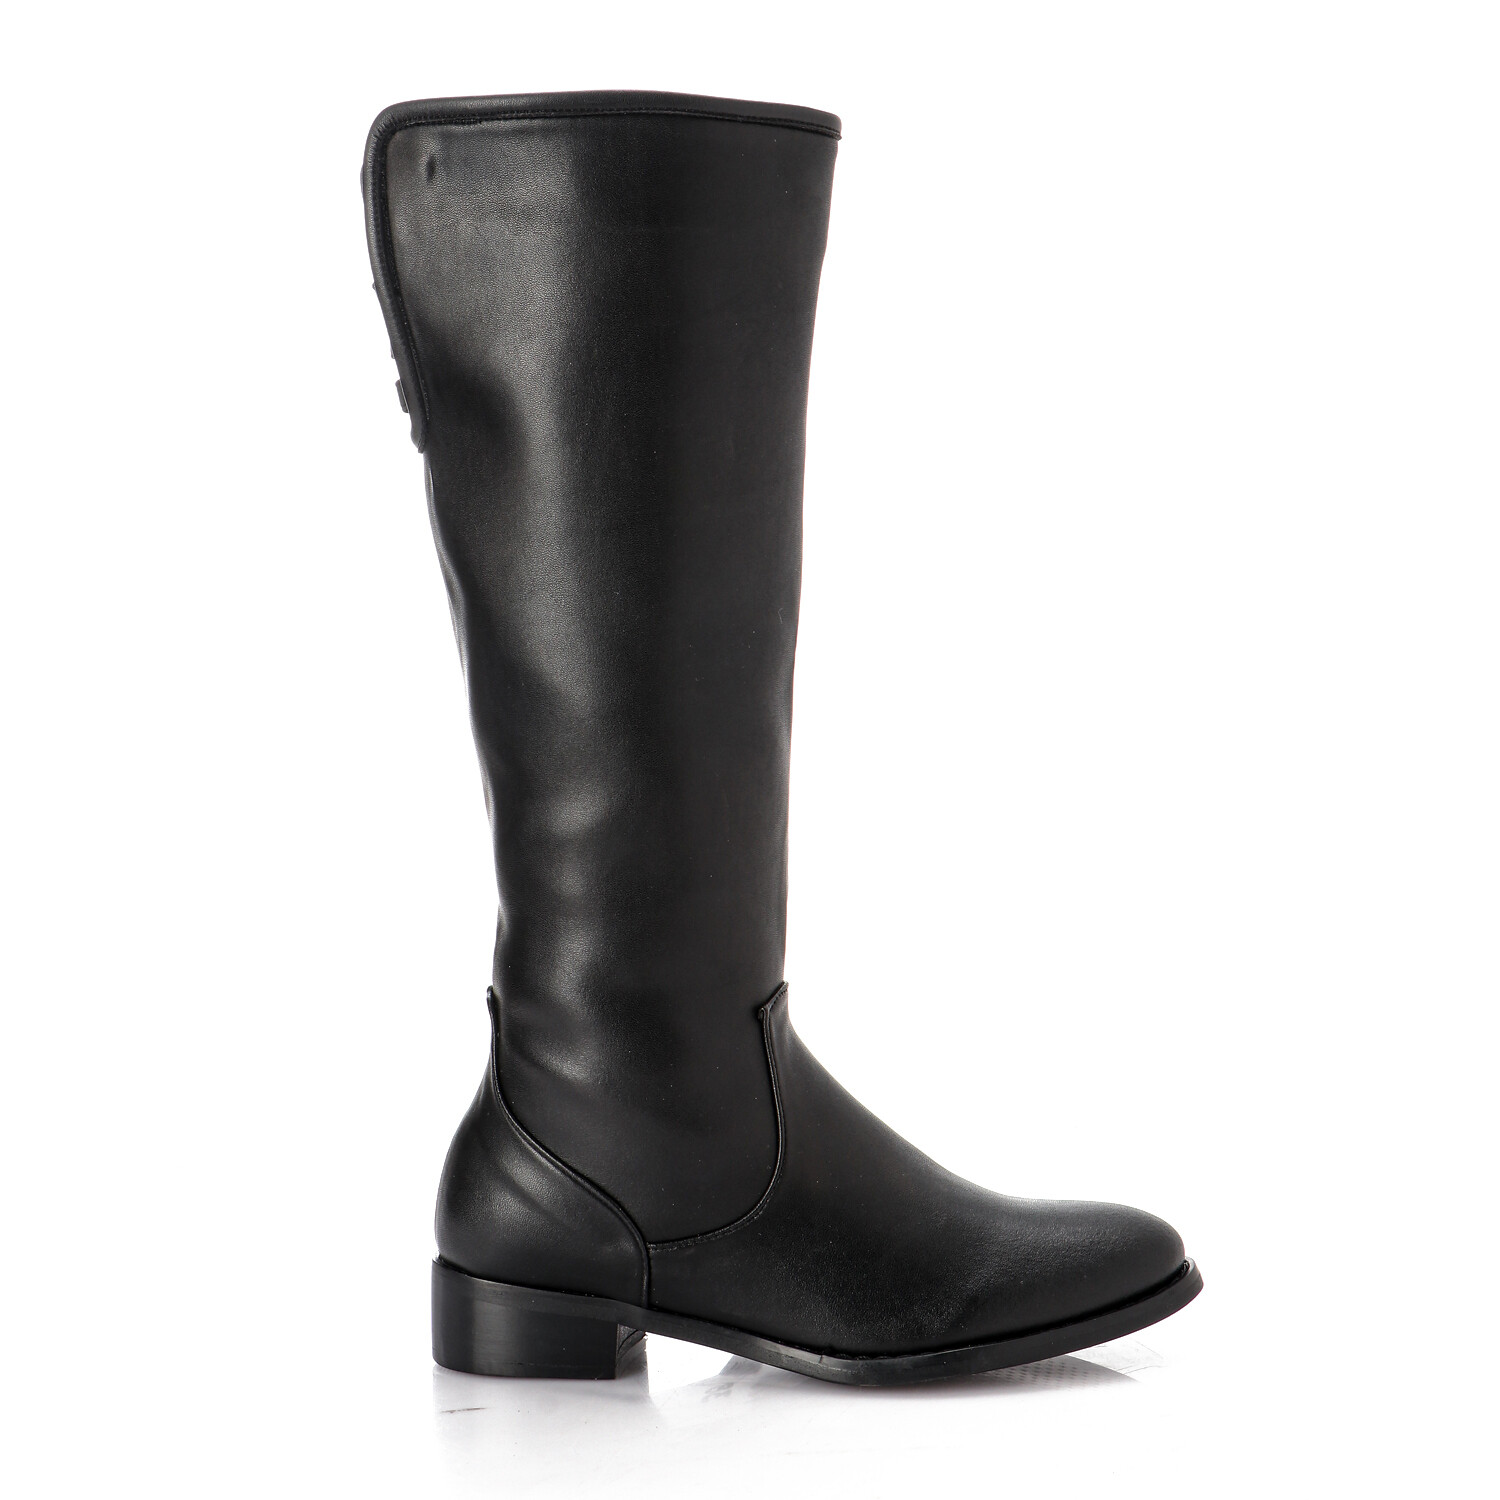 3752-Leather Boot - Black